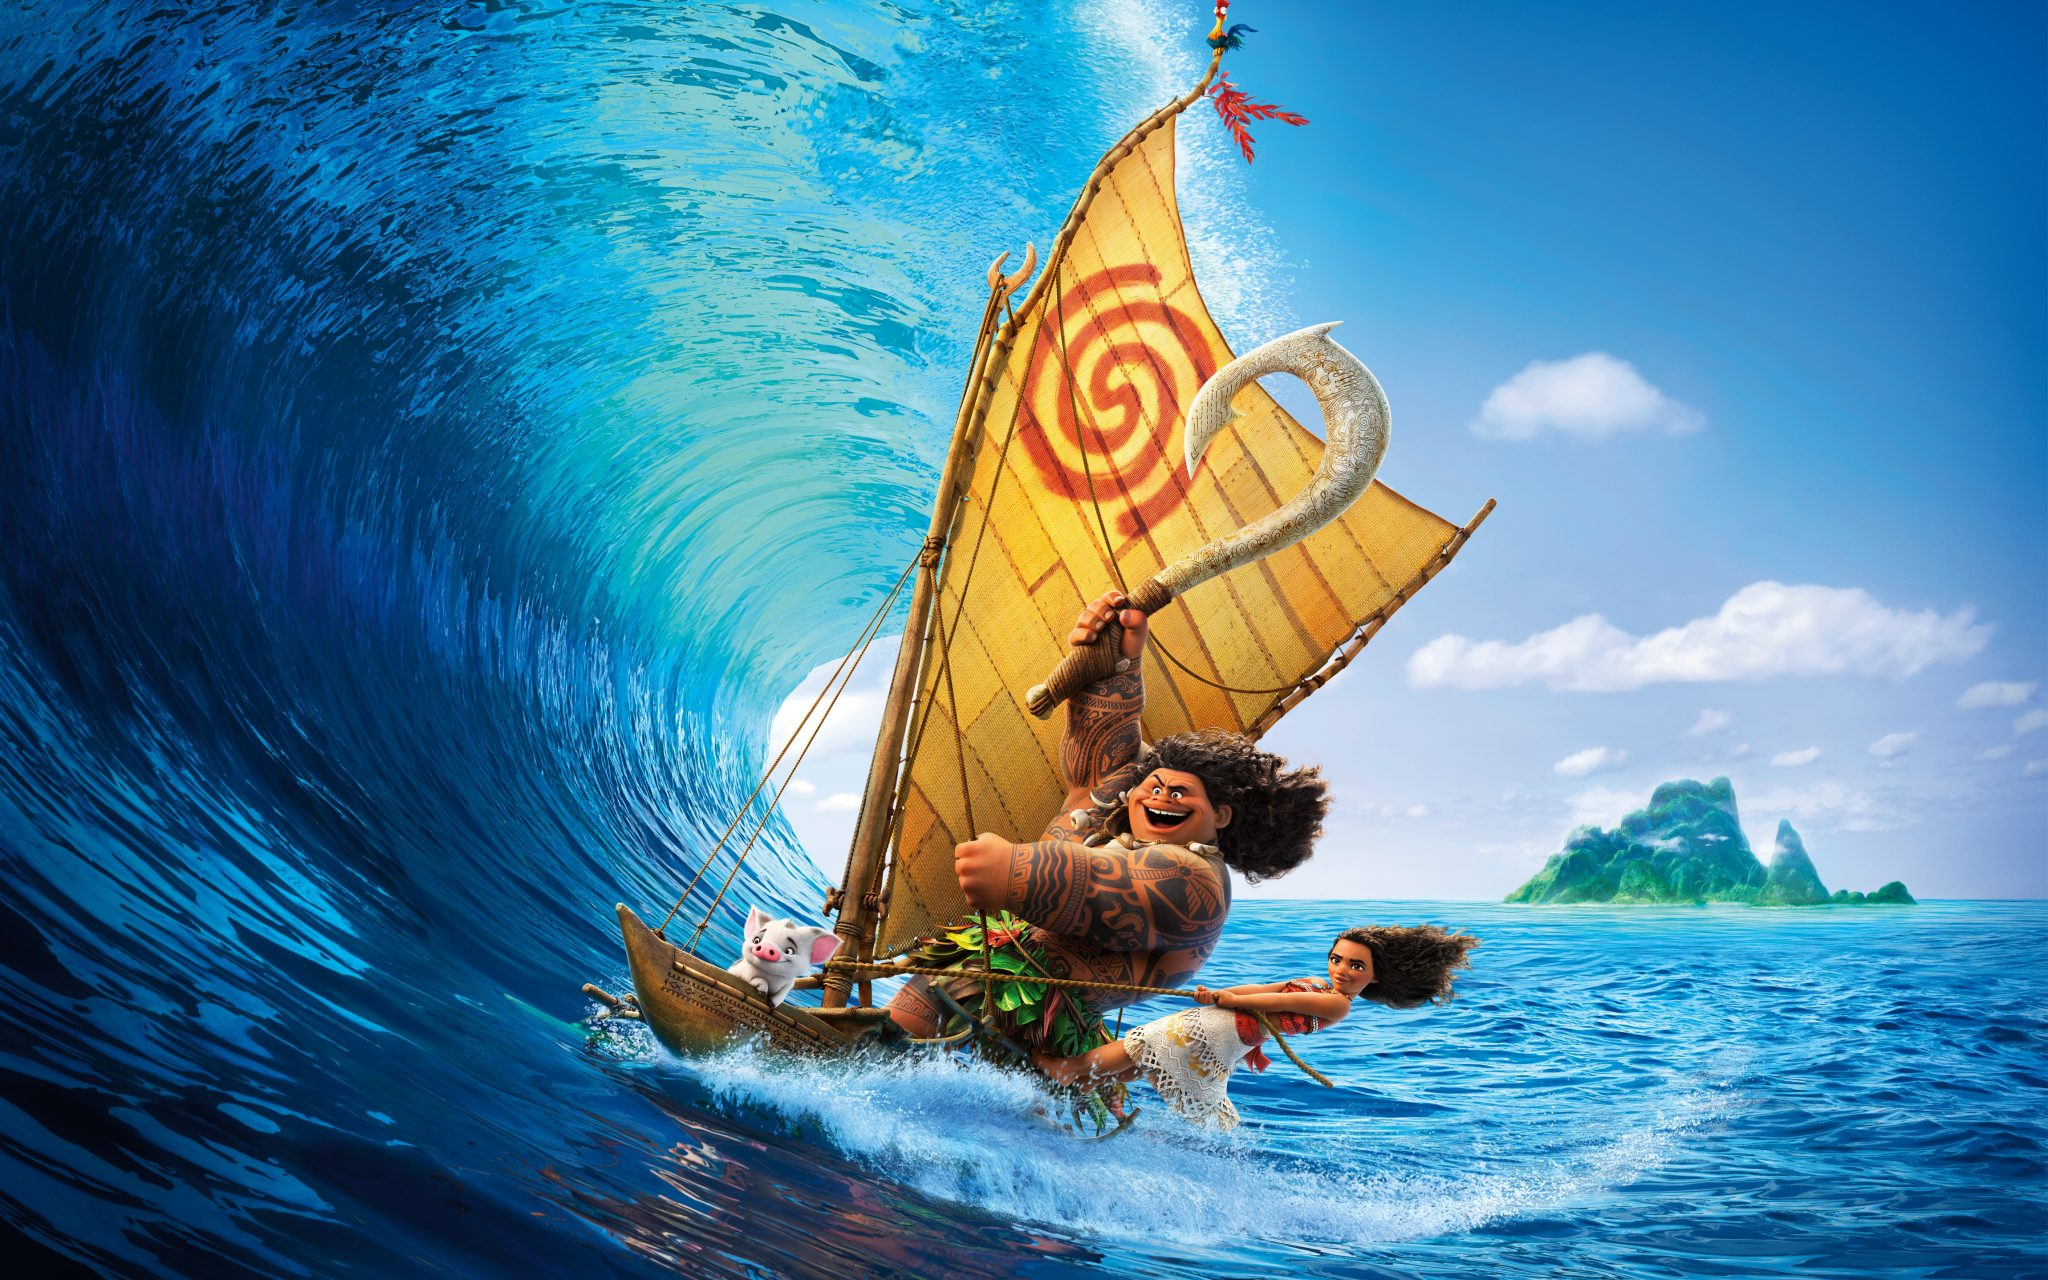 Snarcasm: 'Moana' Is Formulaic Once You Ignore All Of Its Originality